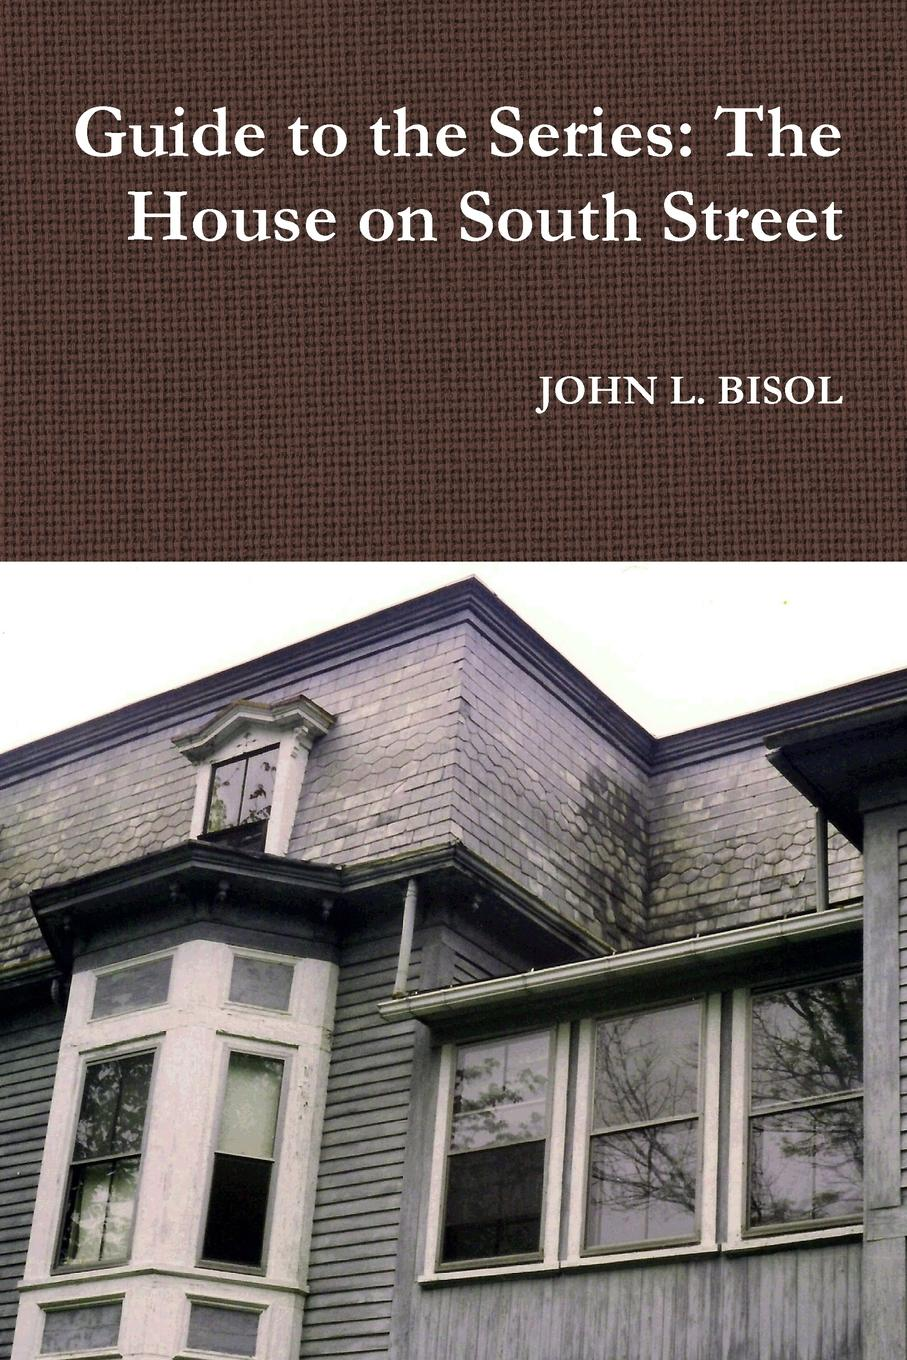 JOHN L. BISOL Guide to the Series. The House on South Street